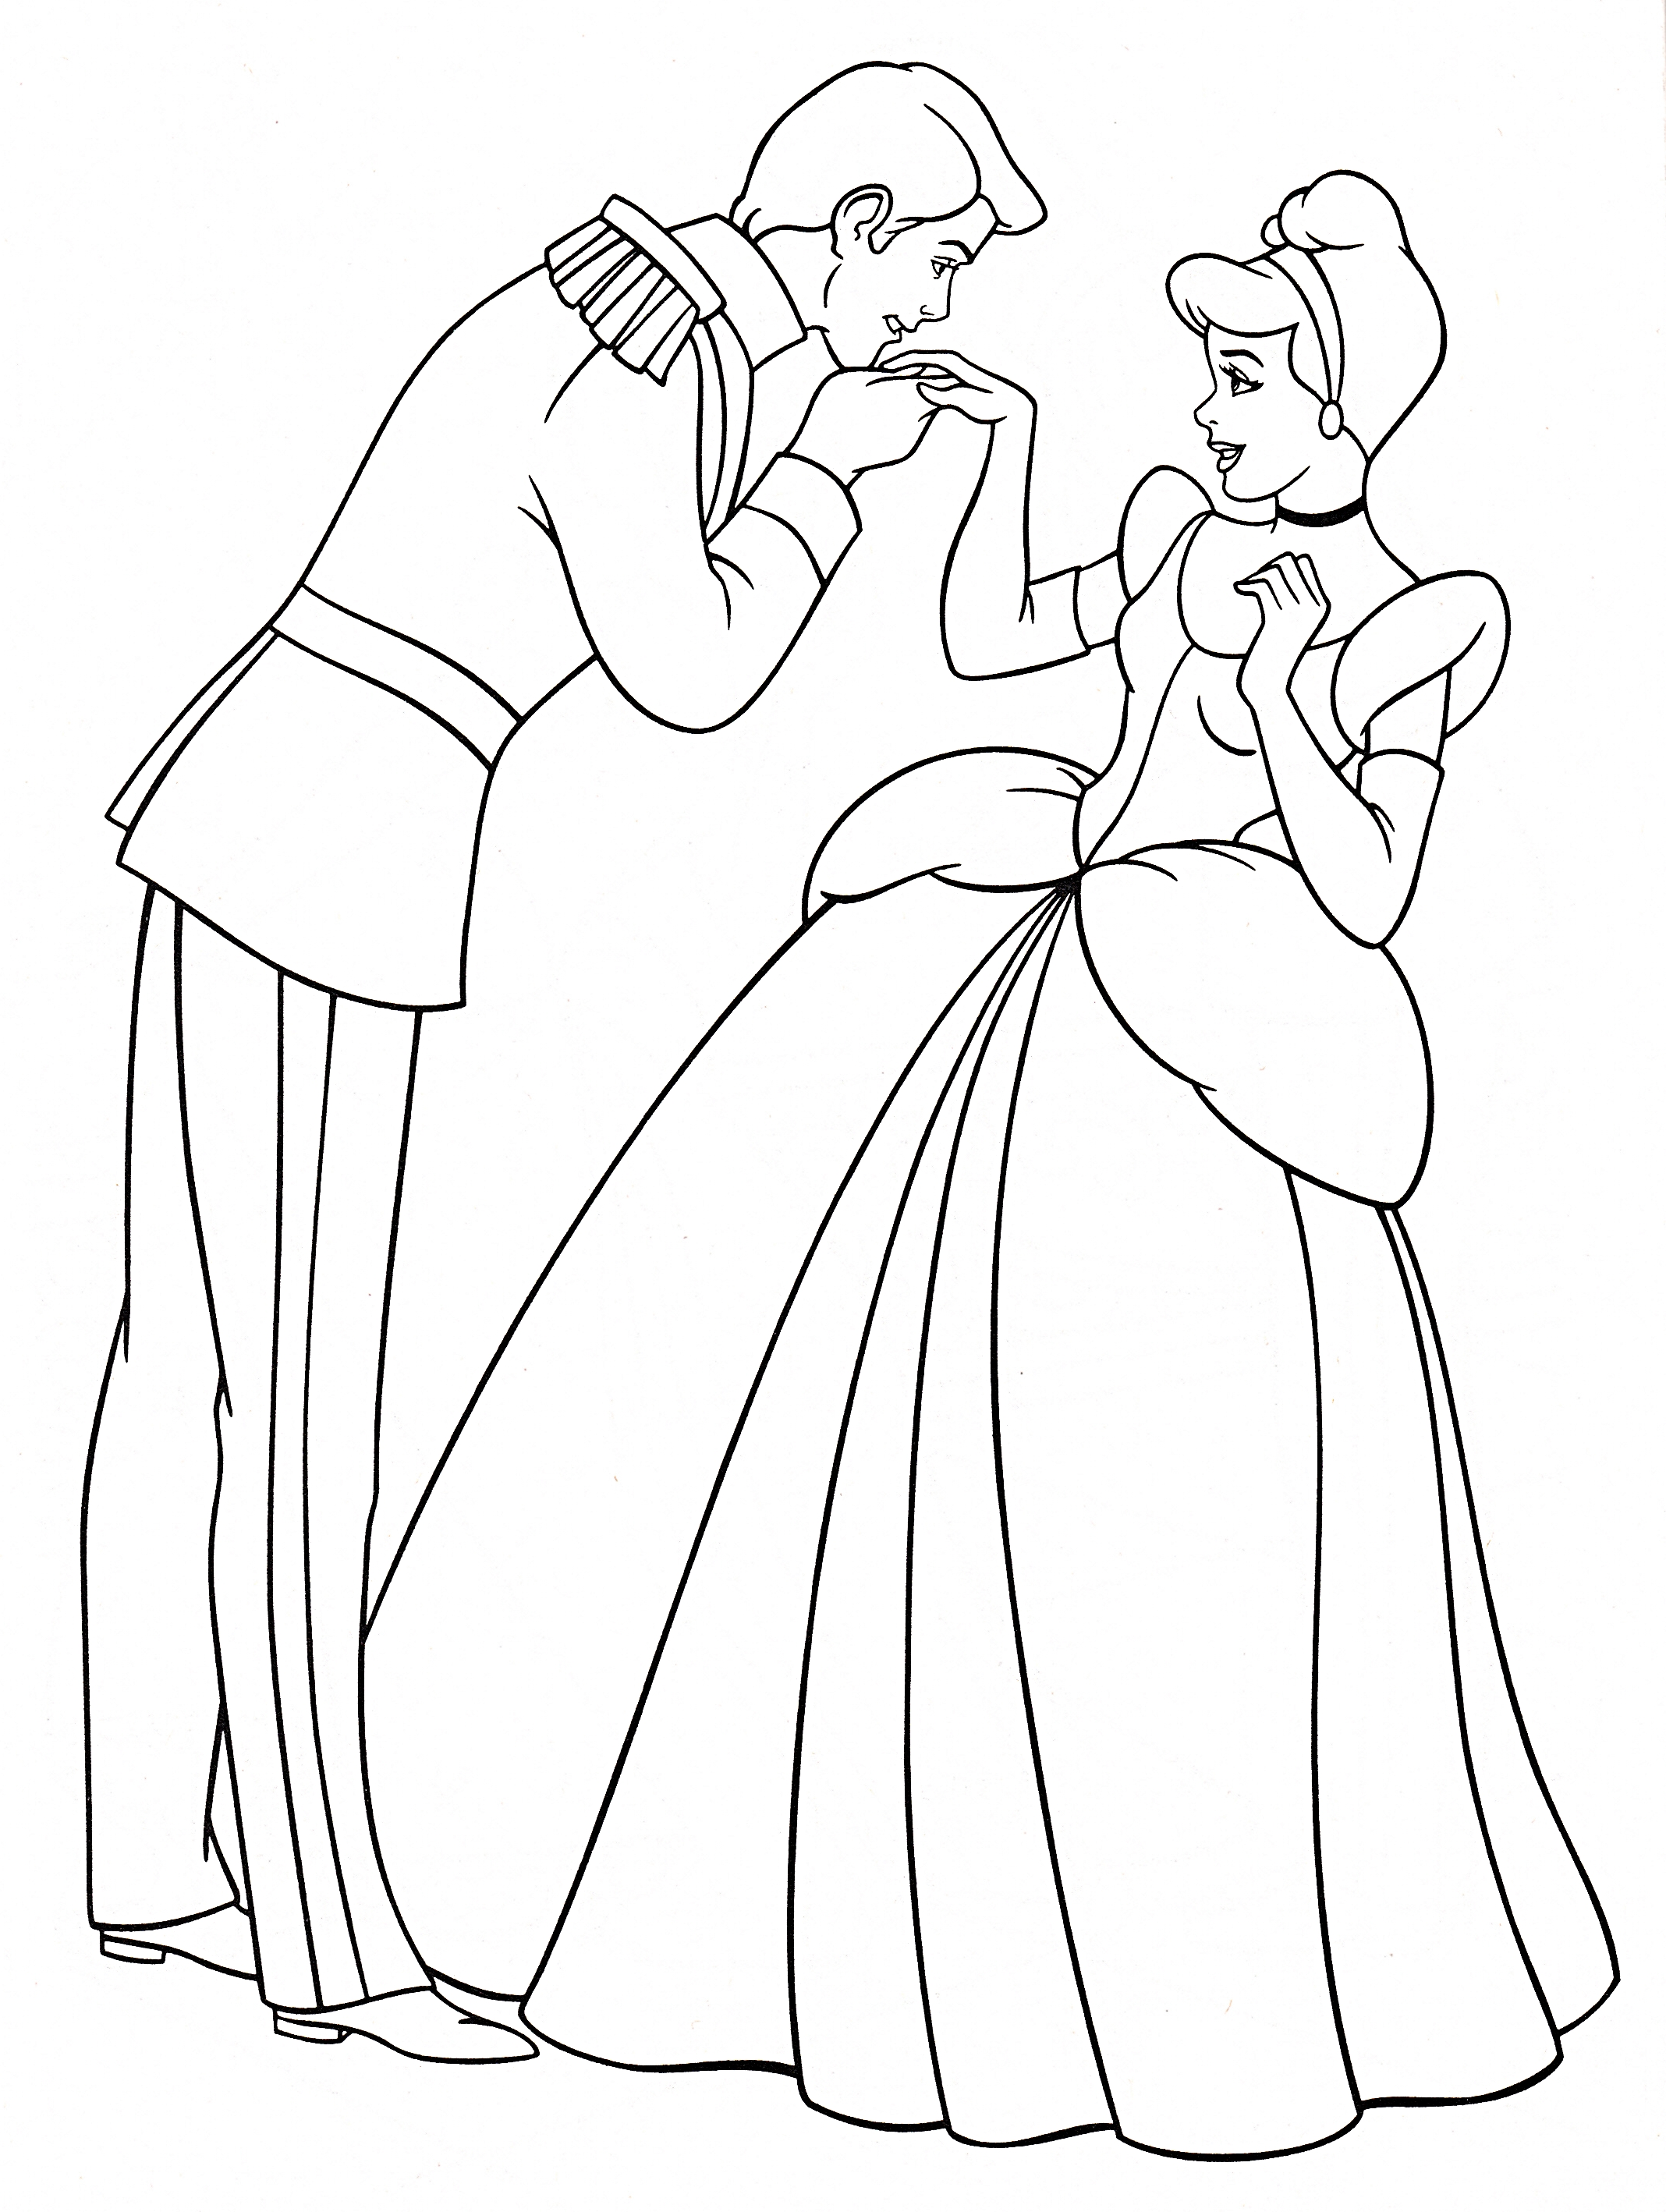 prince and princess coloring pages - photo#29